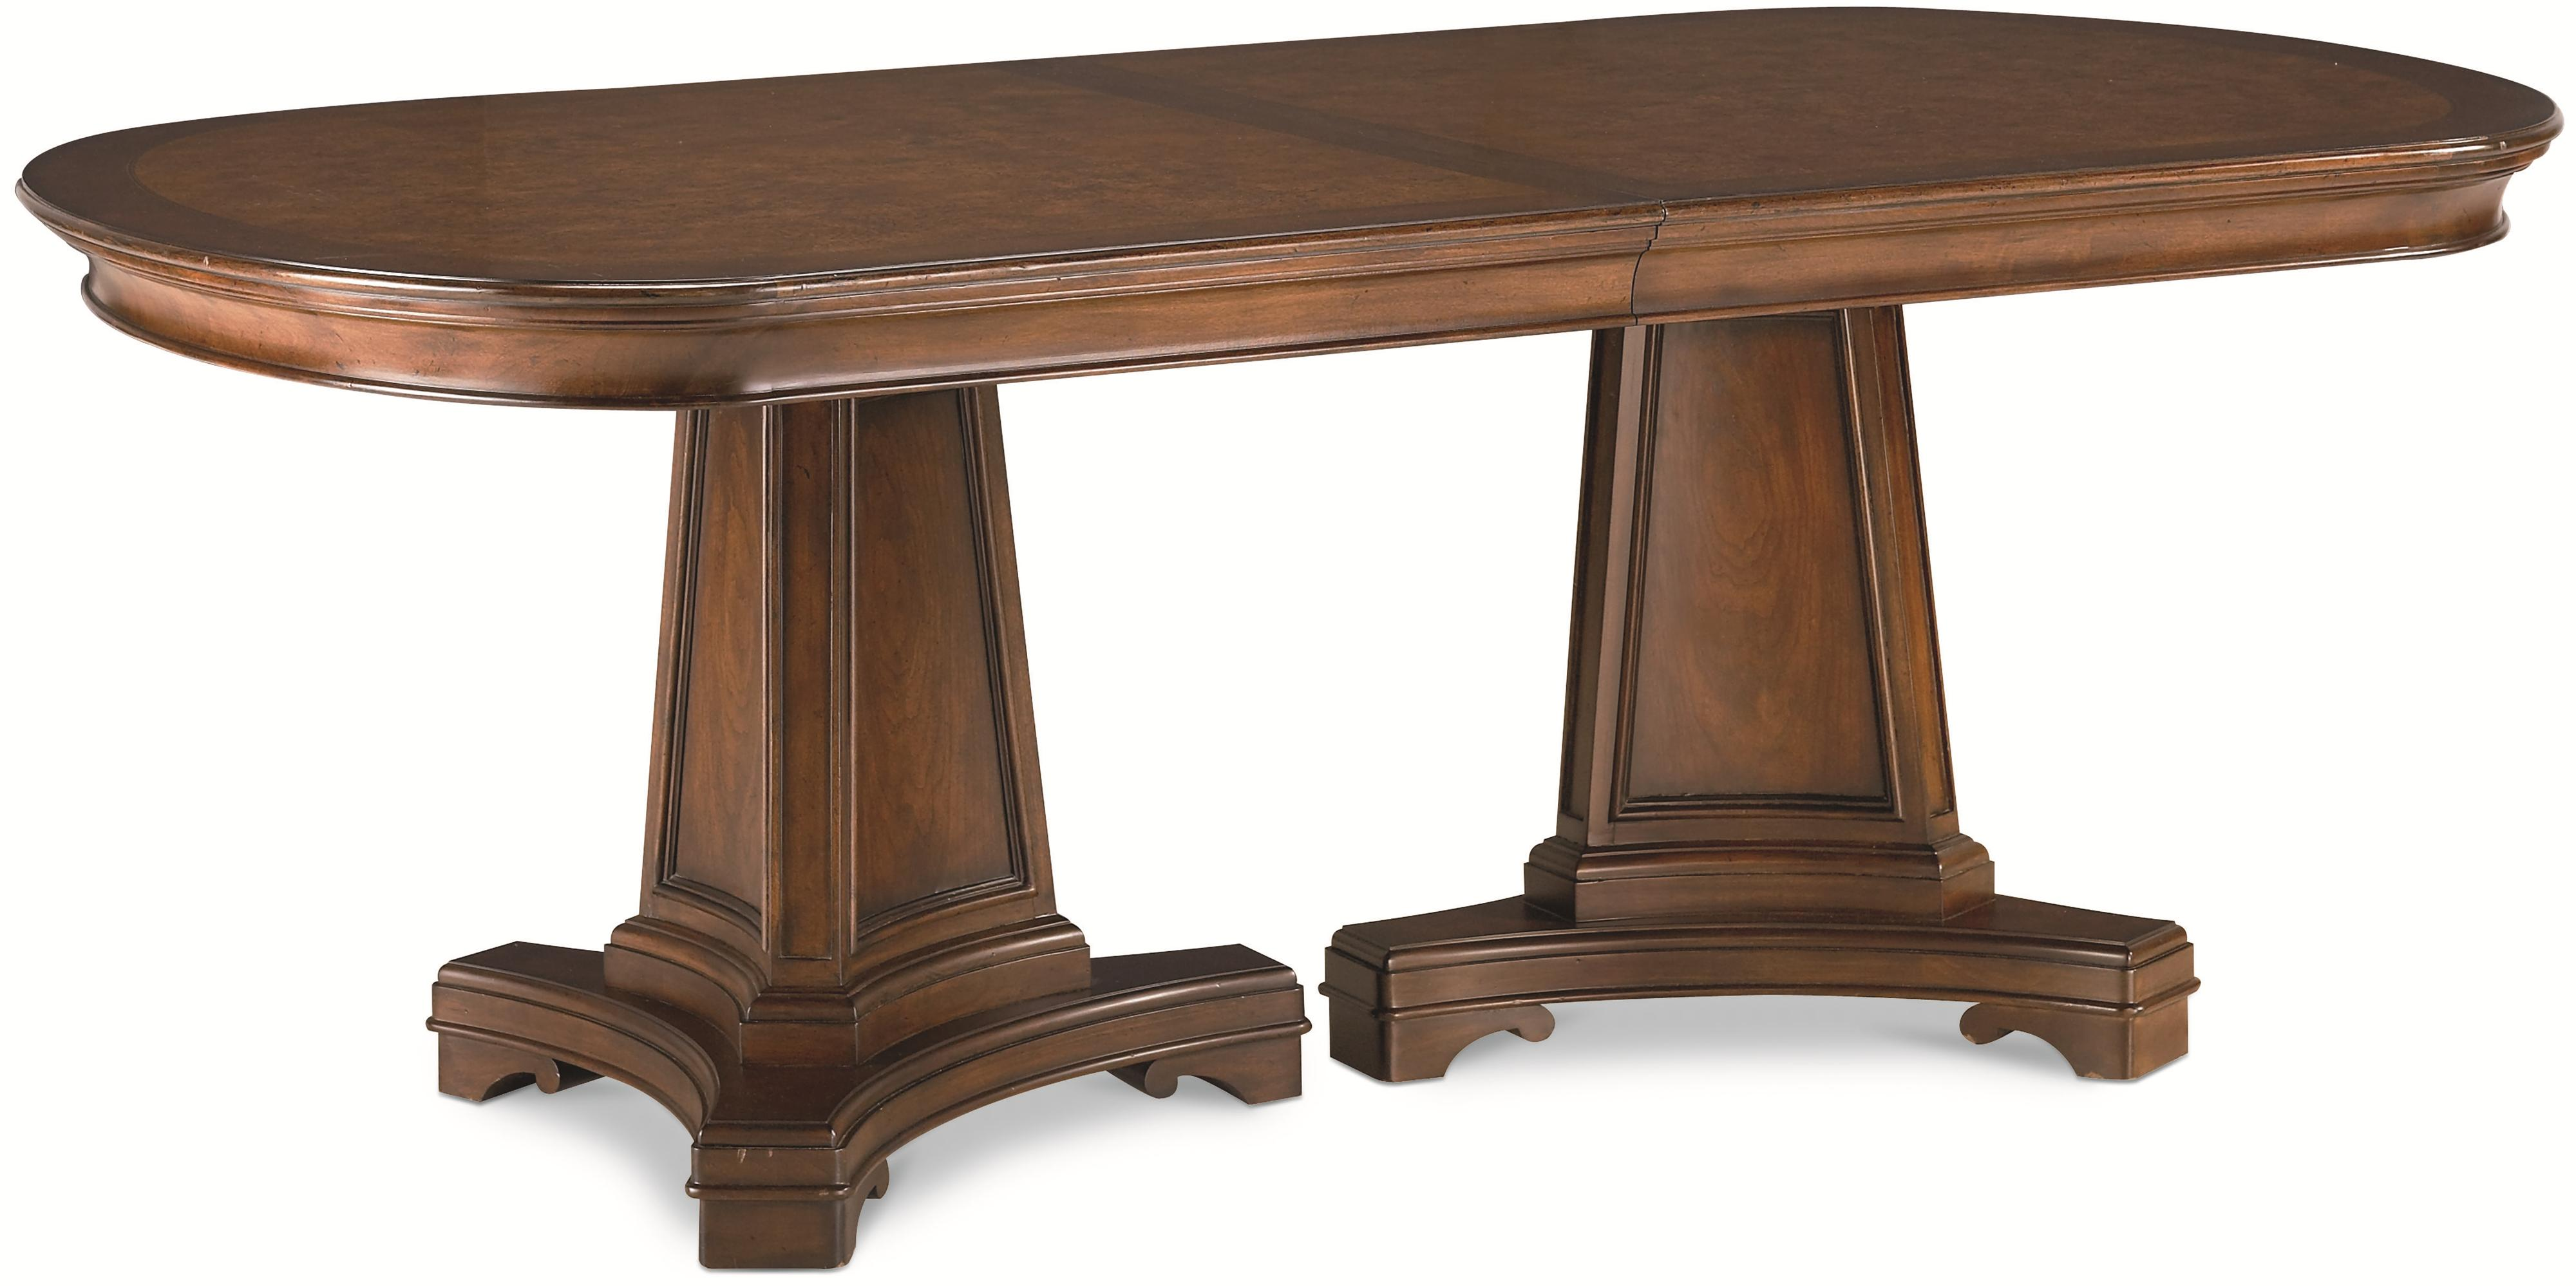 shipping dining table a garden product germain pedestal double furniture free t overstock today r st coffee home